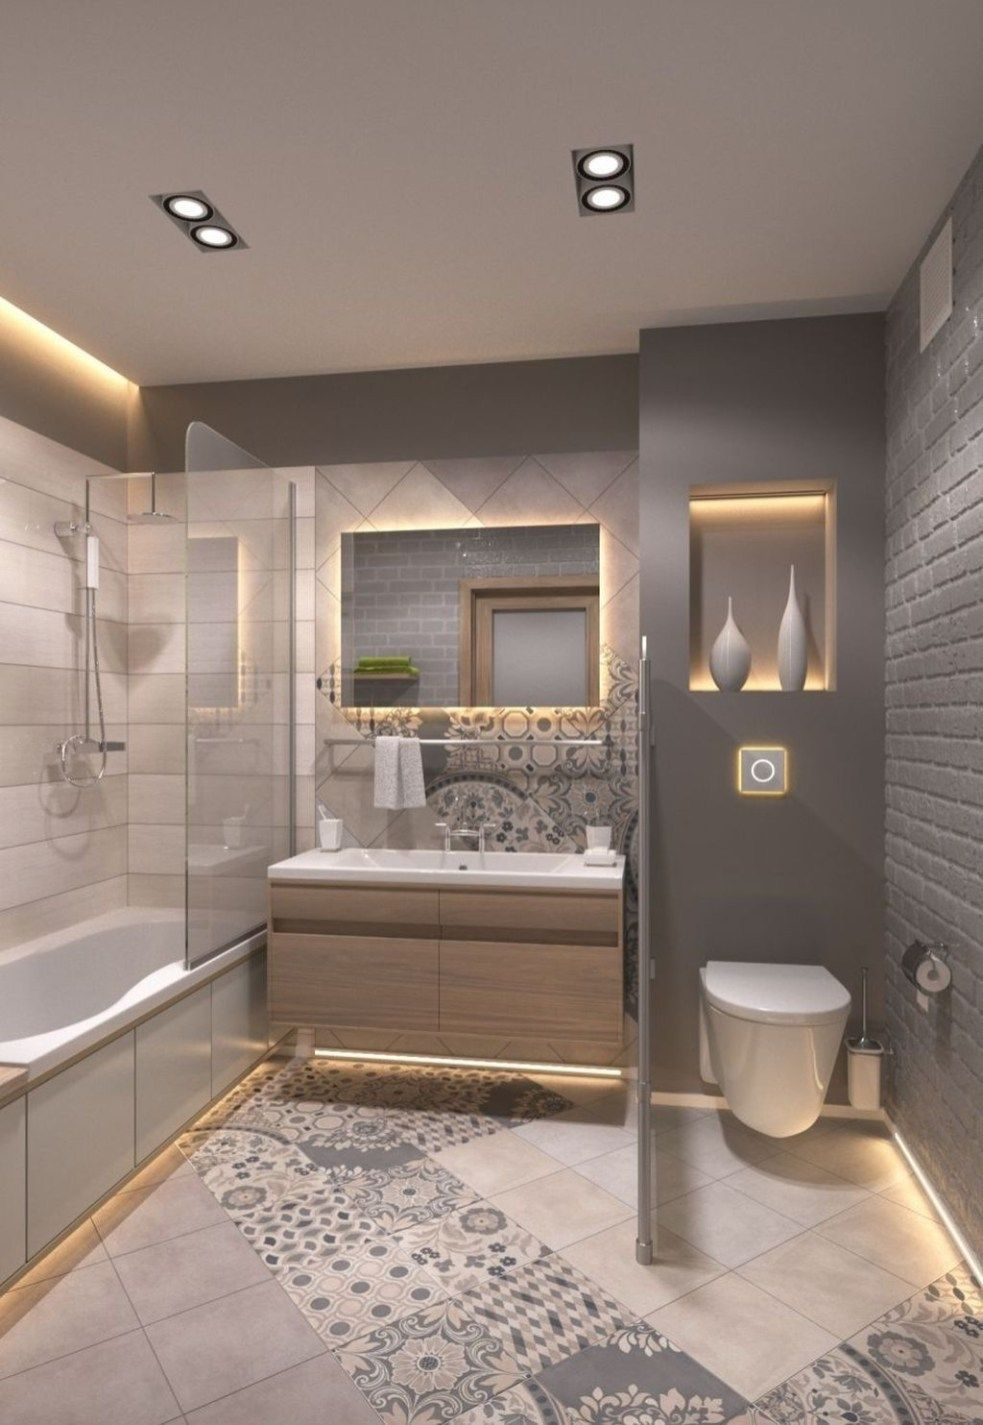 25 Amazing Bathroom Light Ideas is part of Small bathroom decor - Depends of the style you want to have in your bathroom, you can choose lights that are suitable for it  If your home is modern and minimalistic then you